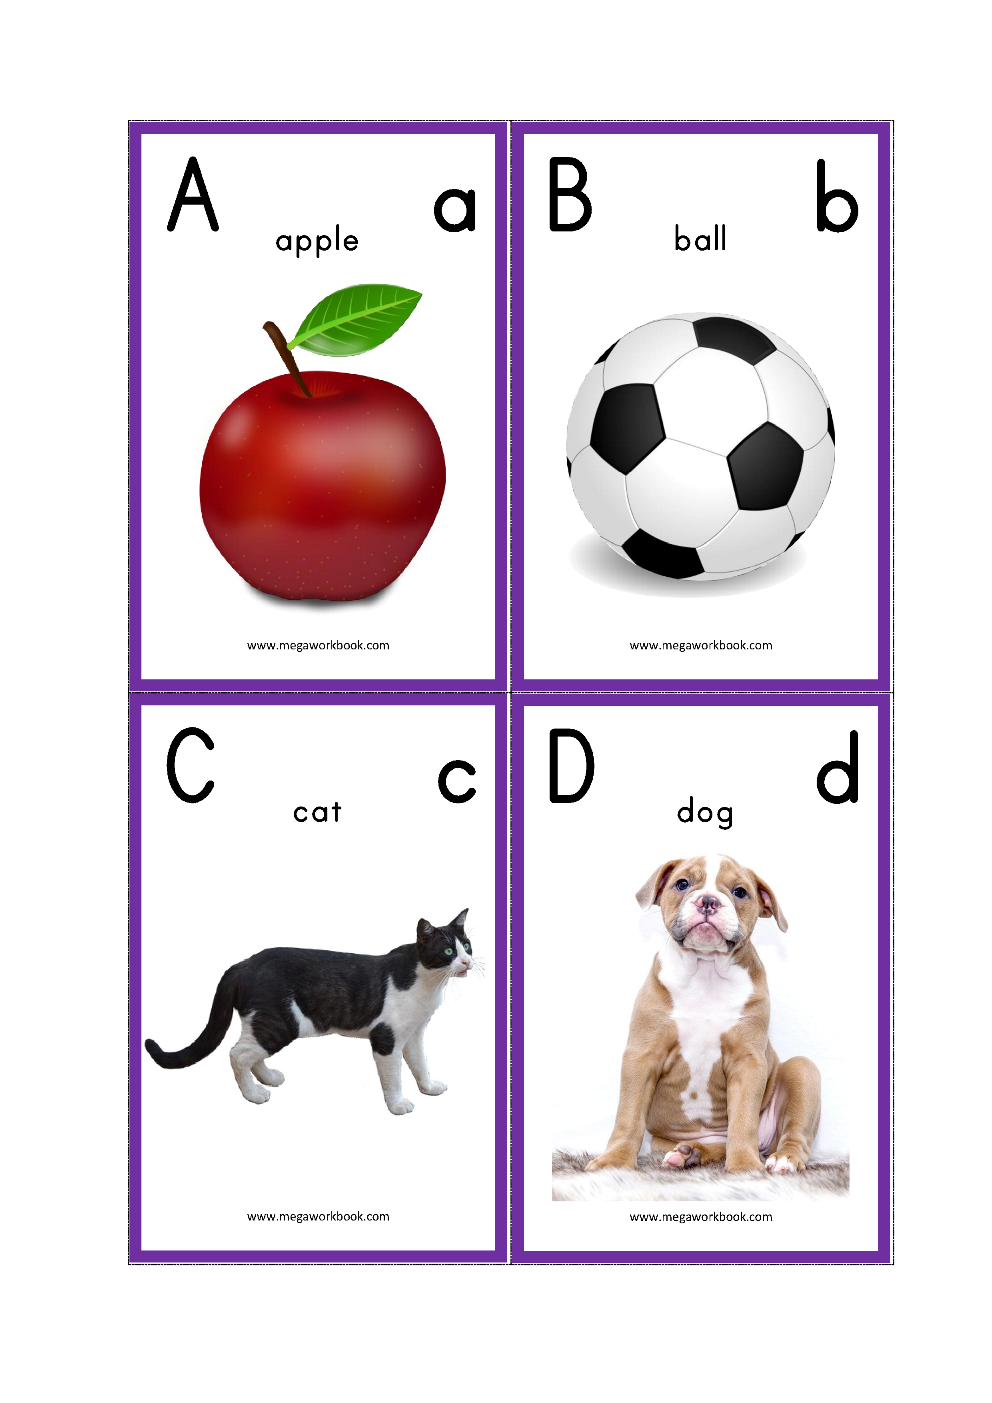 picture about Printable Alphabet Flash Cards titled Alphabet Flash Playing cards - ABC Flash Playing cards - Letter Flashcards